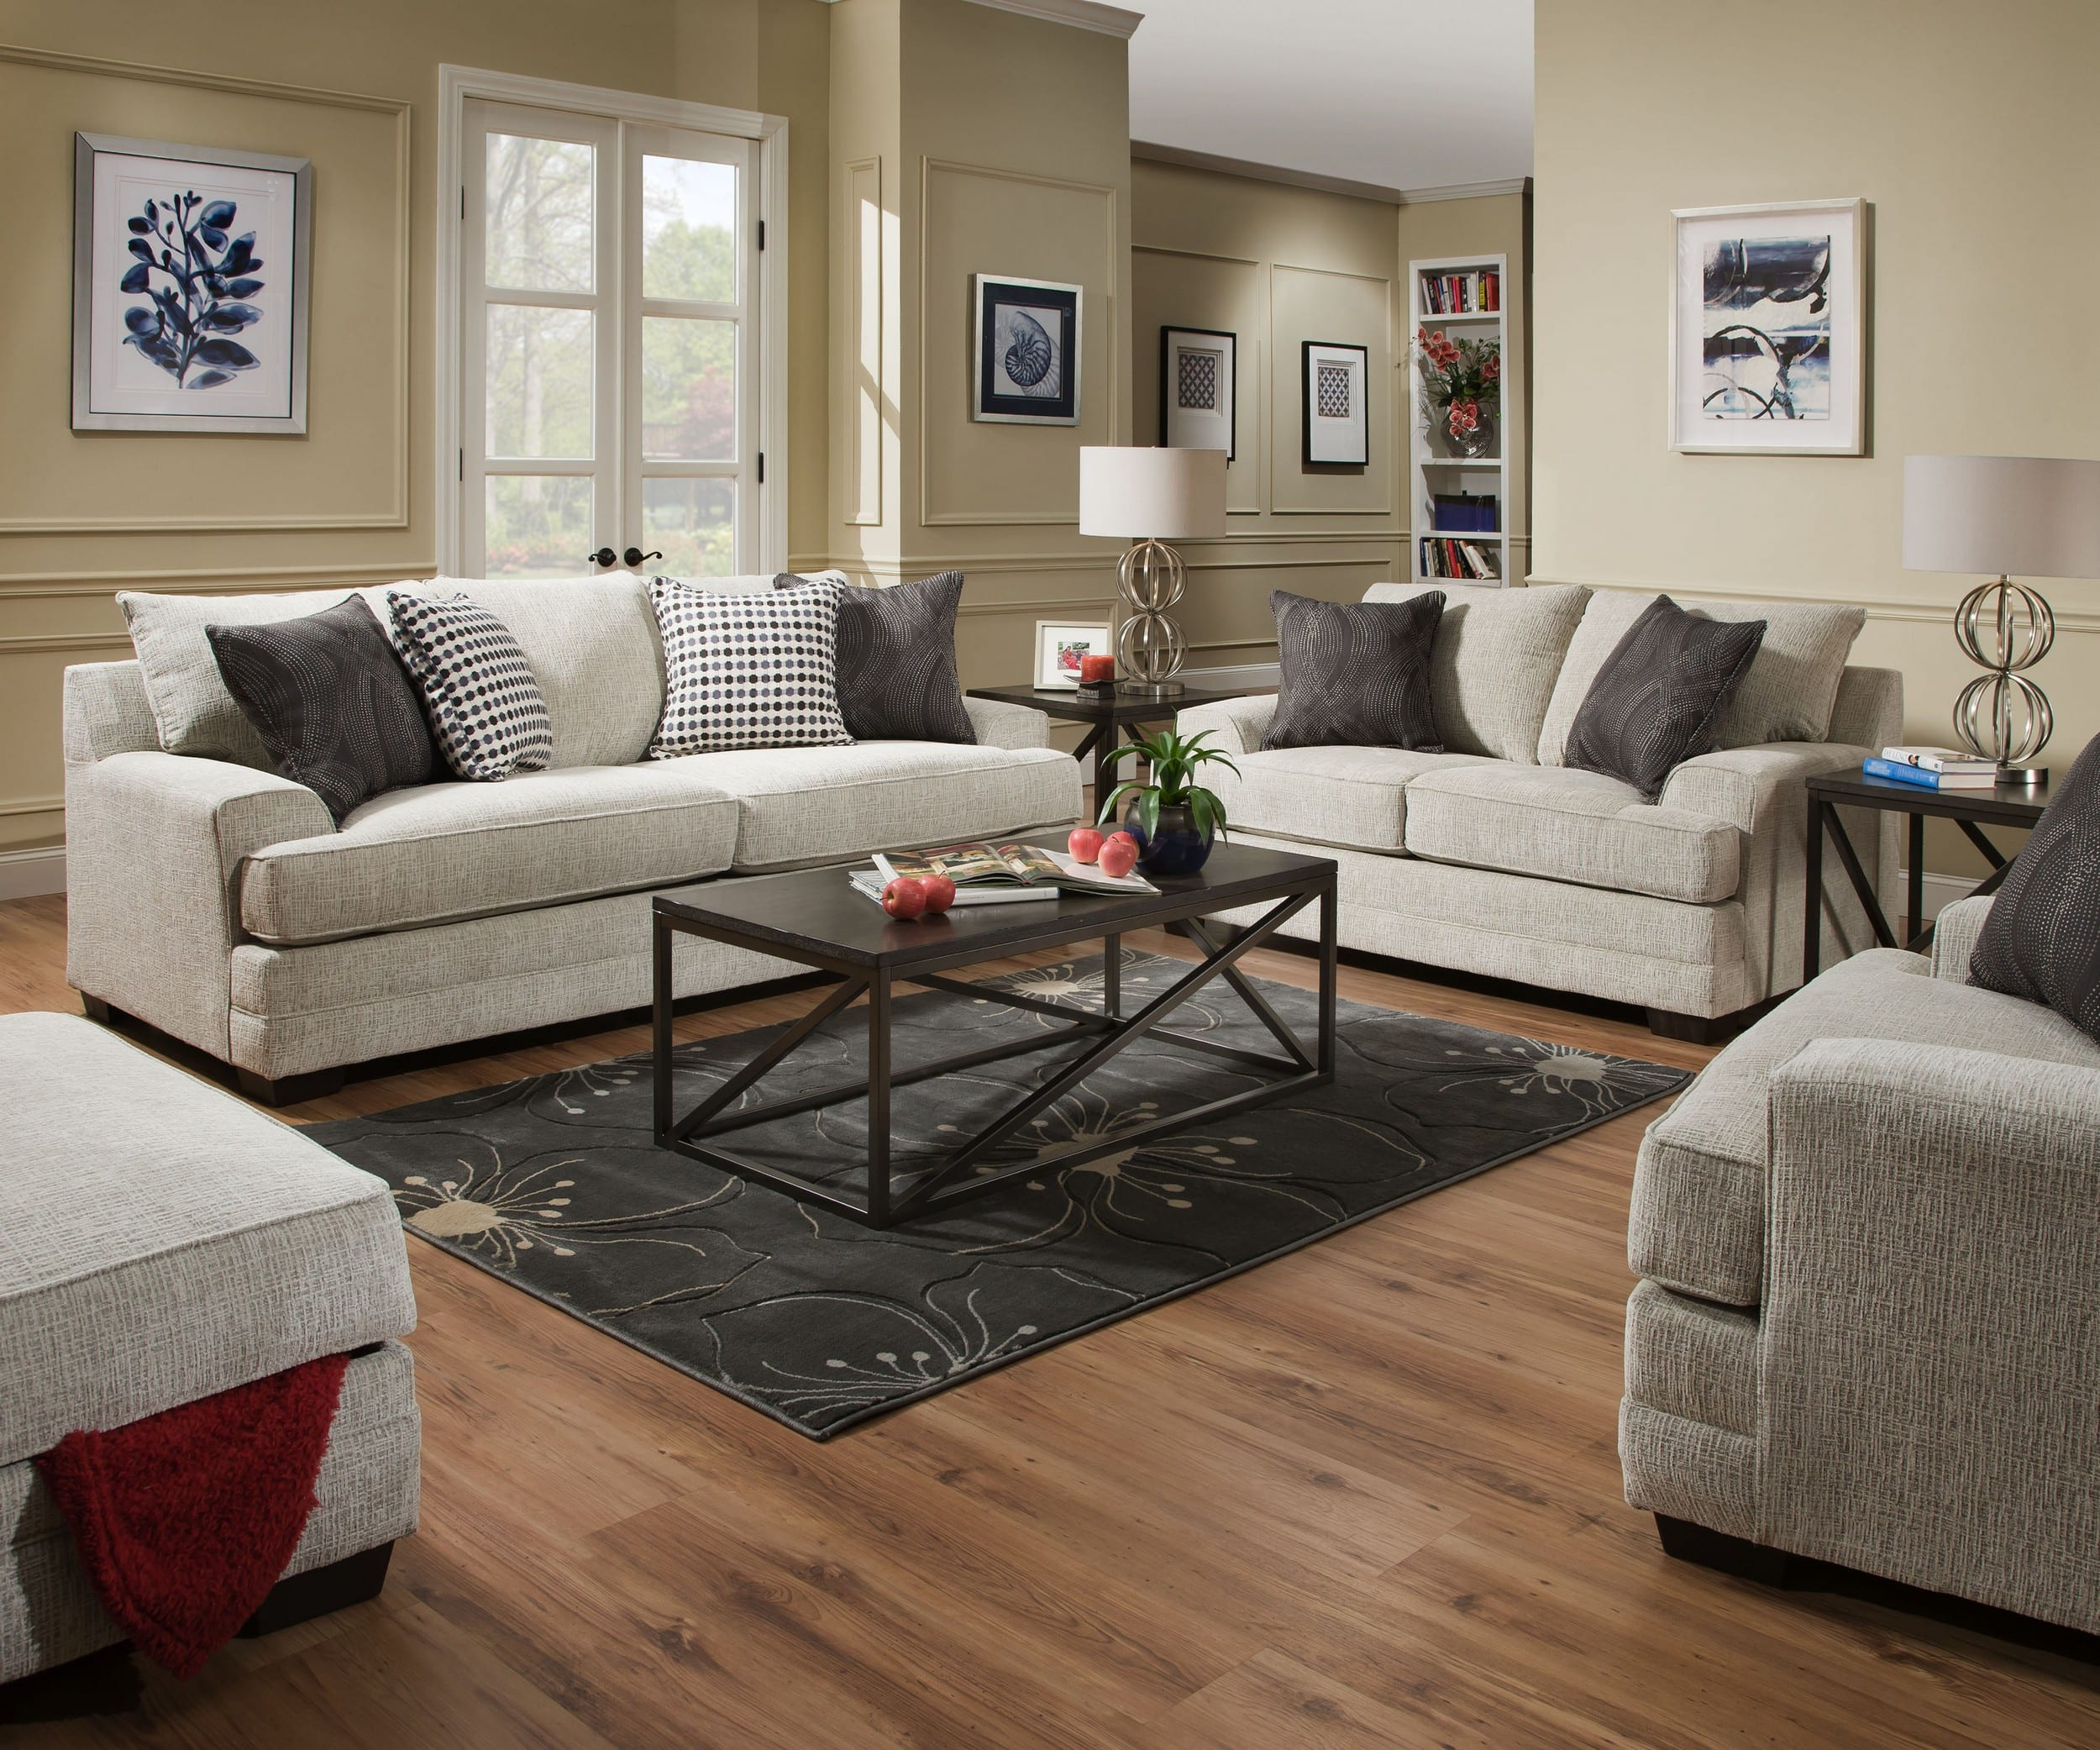 Simmons Upholstery 6548BR-03 Dillon Driftwood, 6548BR-02 Dillon Driftwood,  6548BR-01 Dillon Driftwood